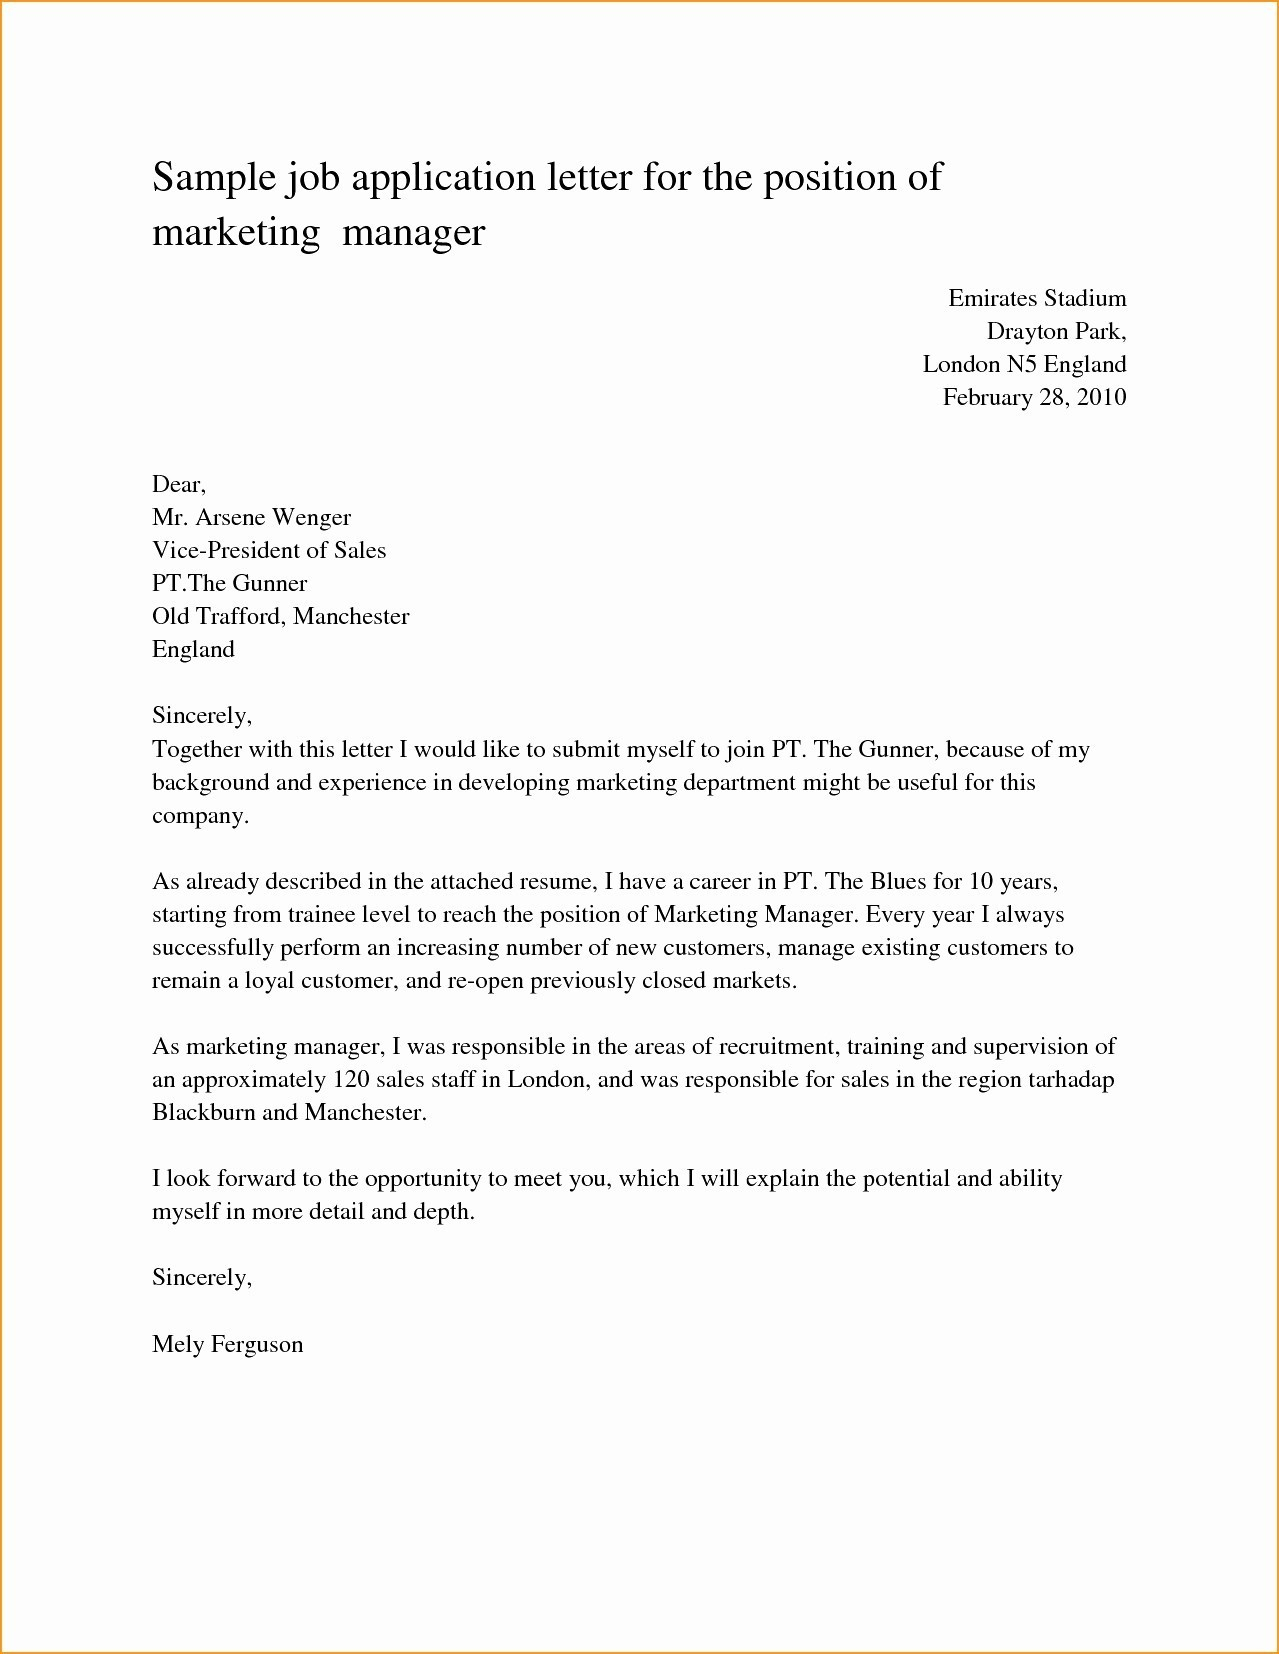 cover letter for returning to previous employer template Collection-Sample Cover Letter for Returning to Previous Employer Awesome Resum Fresh Elegant Languages Resume Fresh Point 10-m